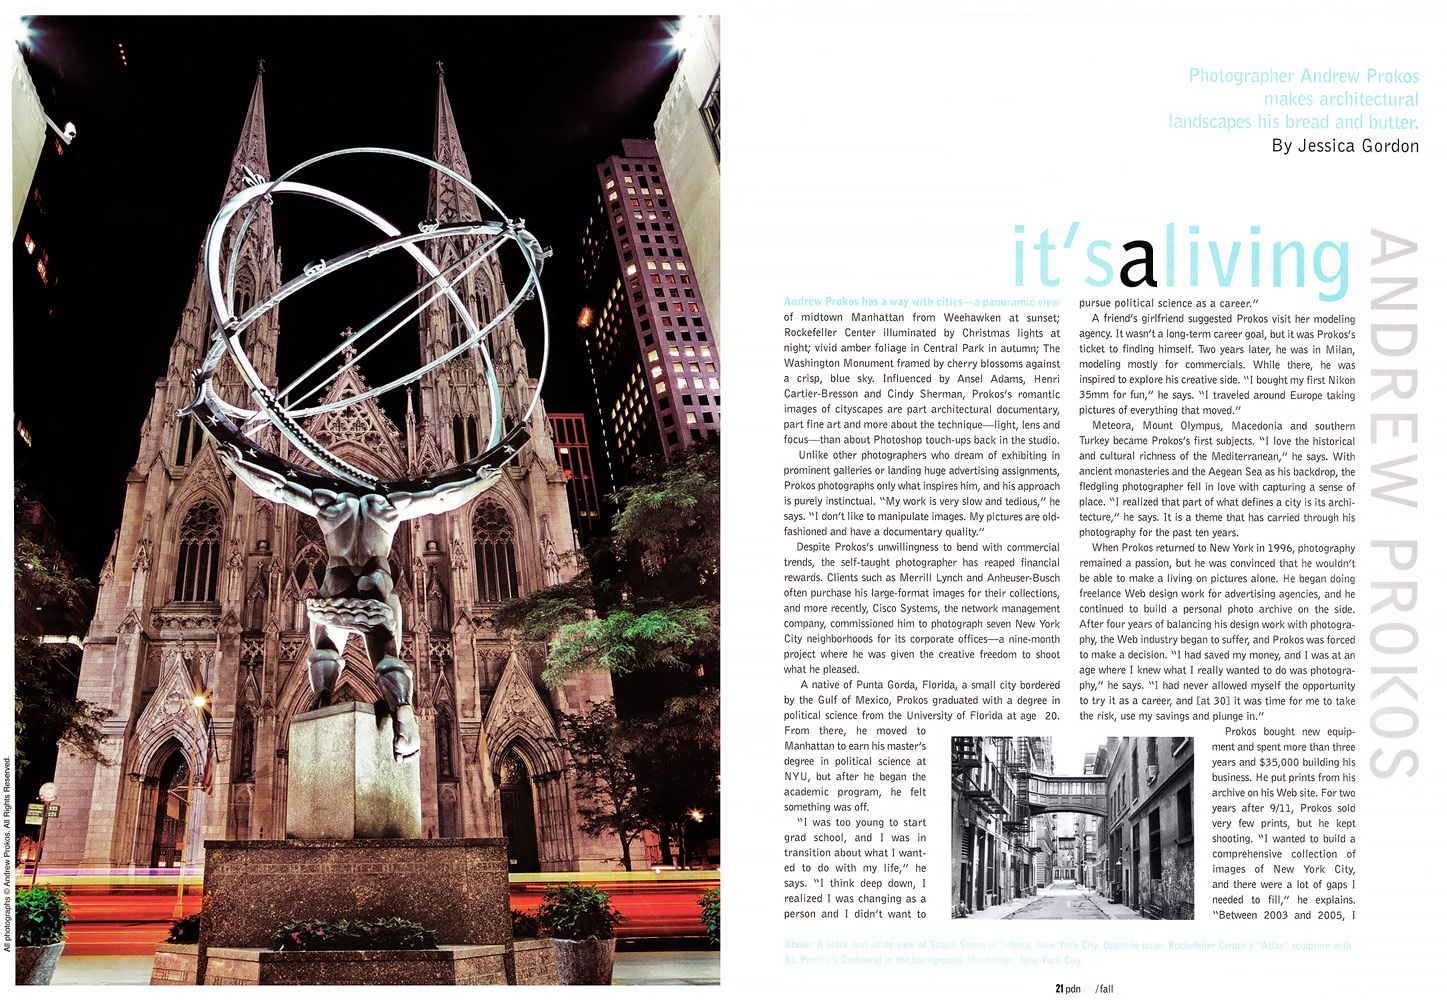 PDNedu magazine article about photographer Andrew Prokos